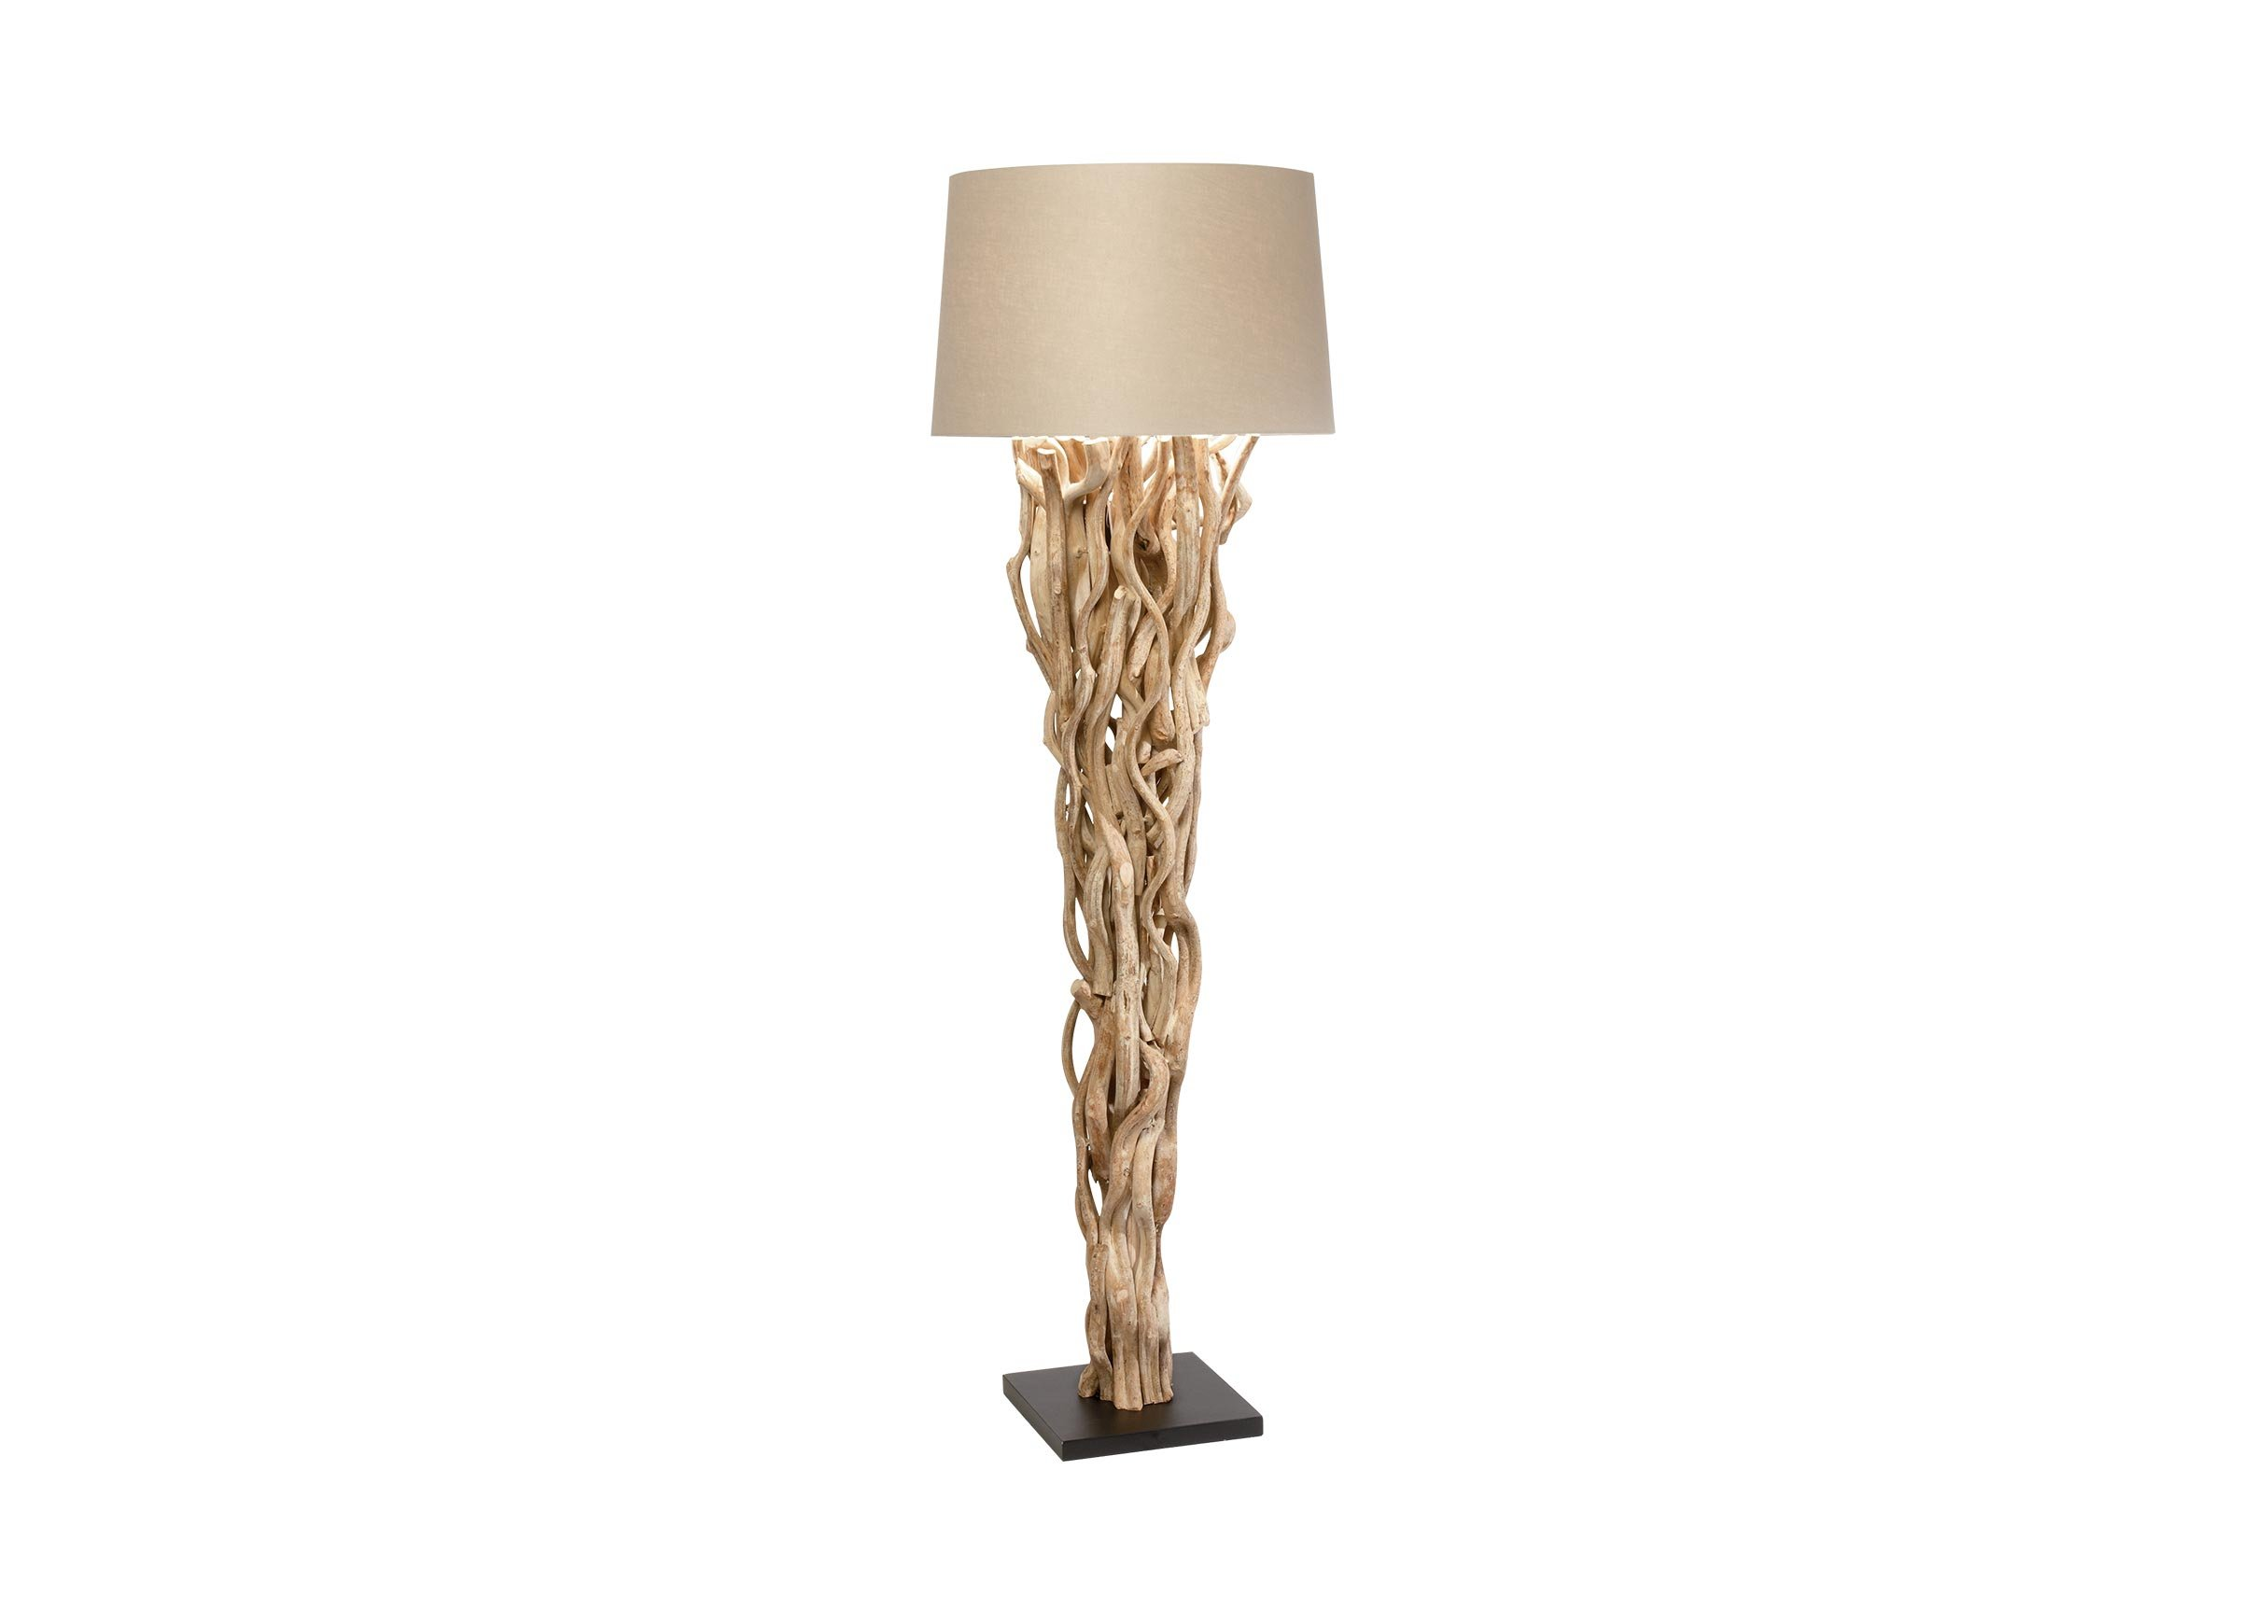 Chandler floor lamp floor lamps ethan allen images null mozeypictures Choice Image